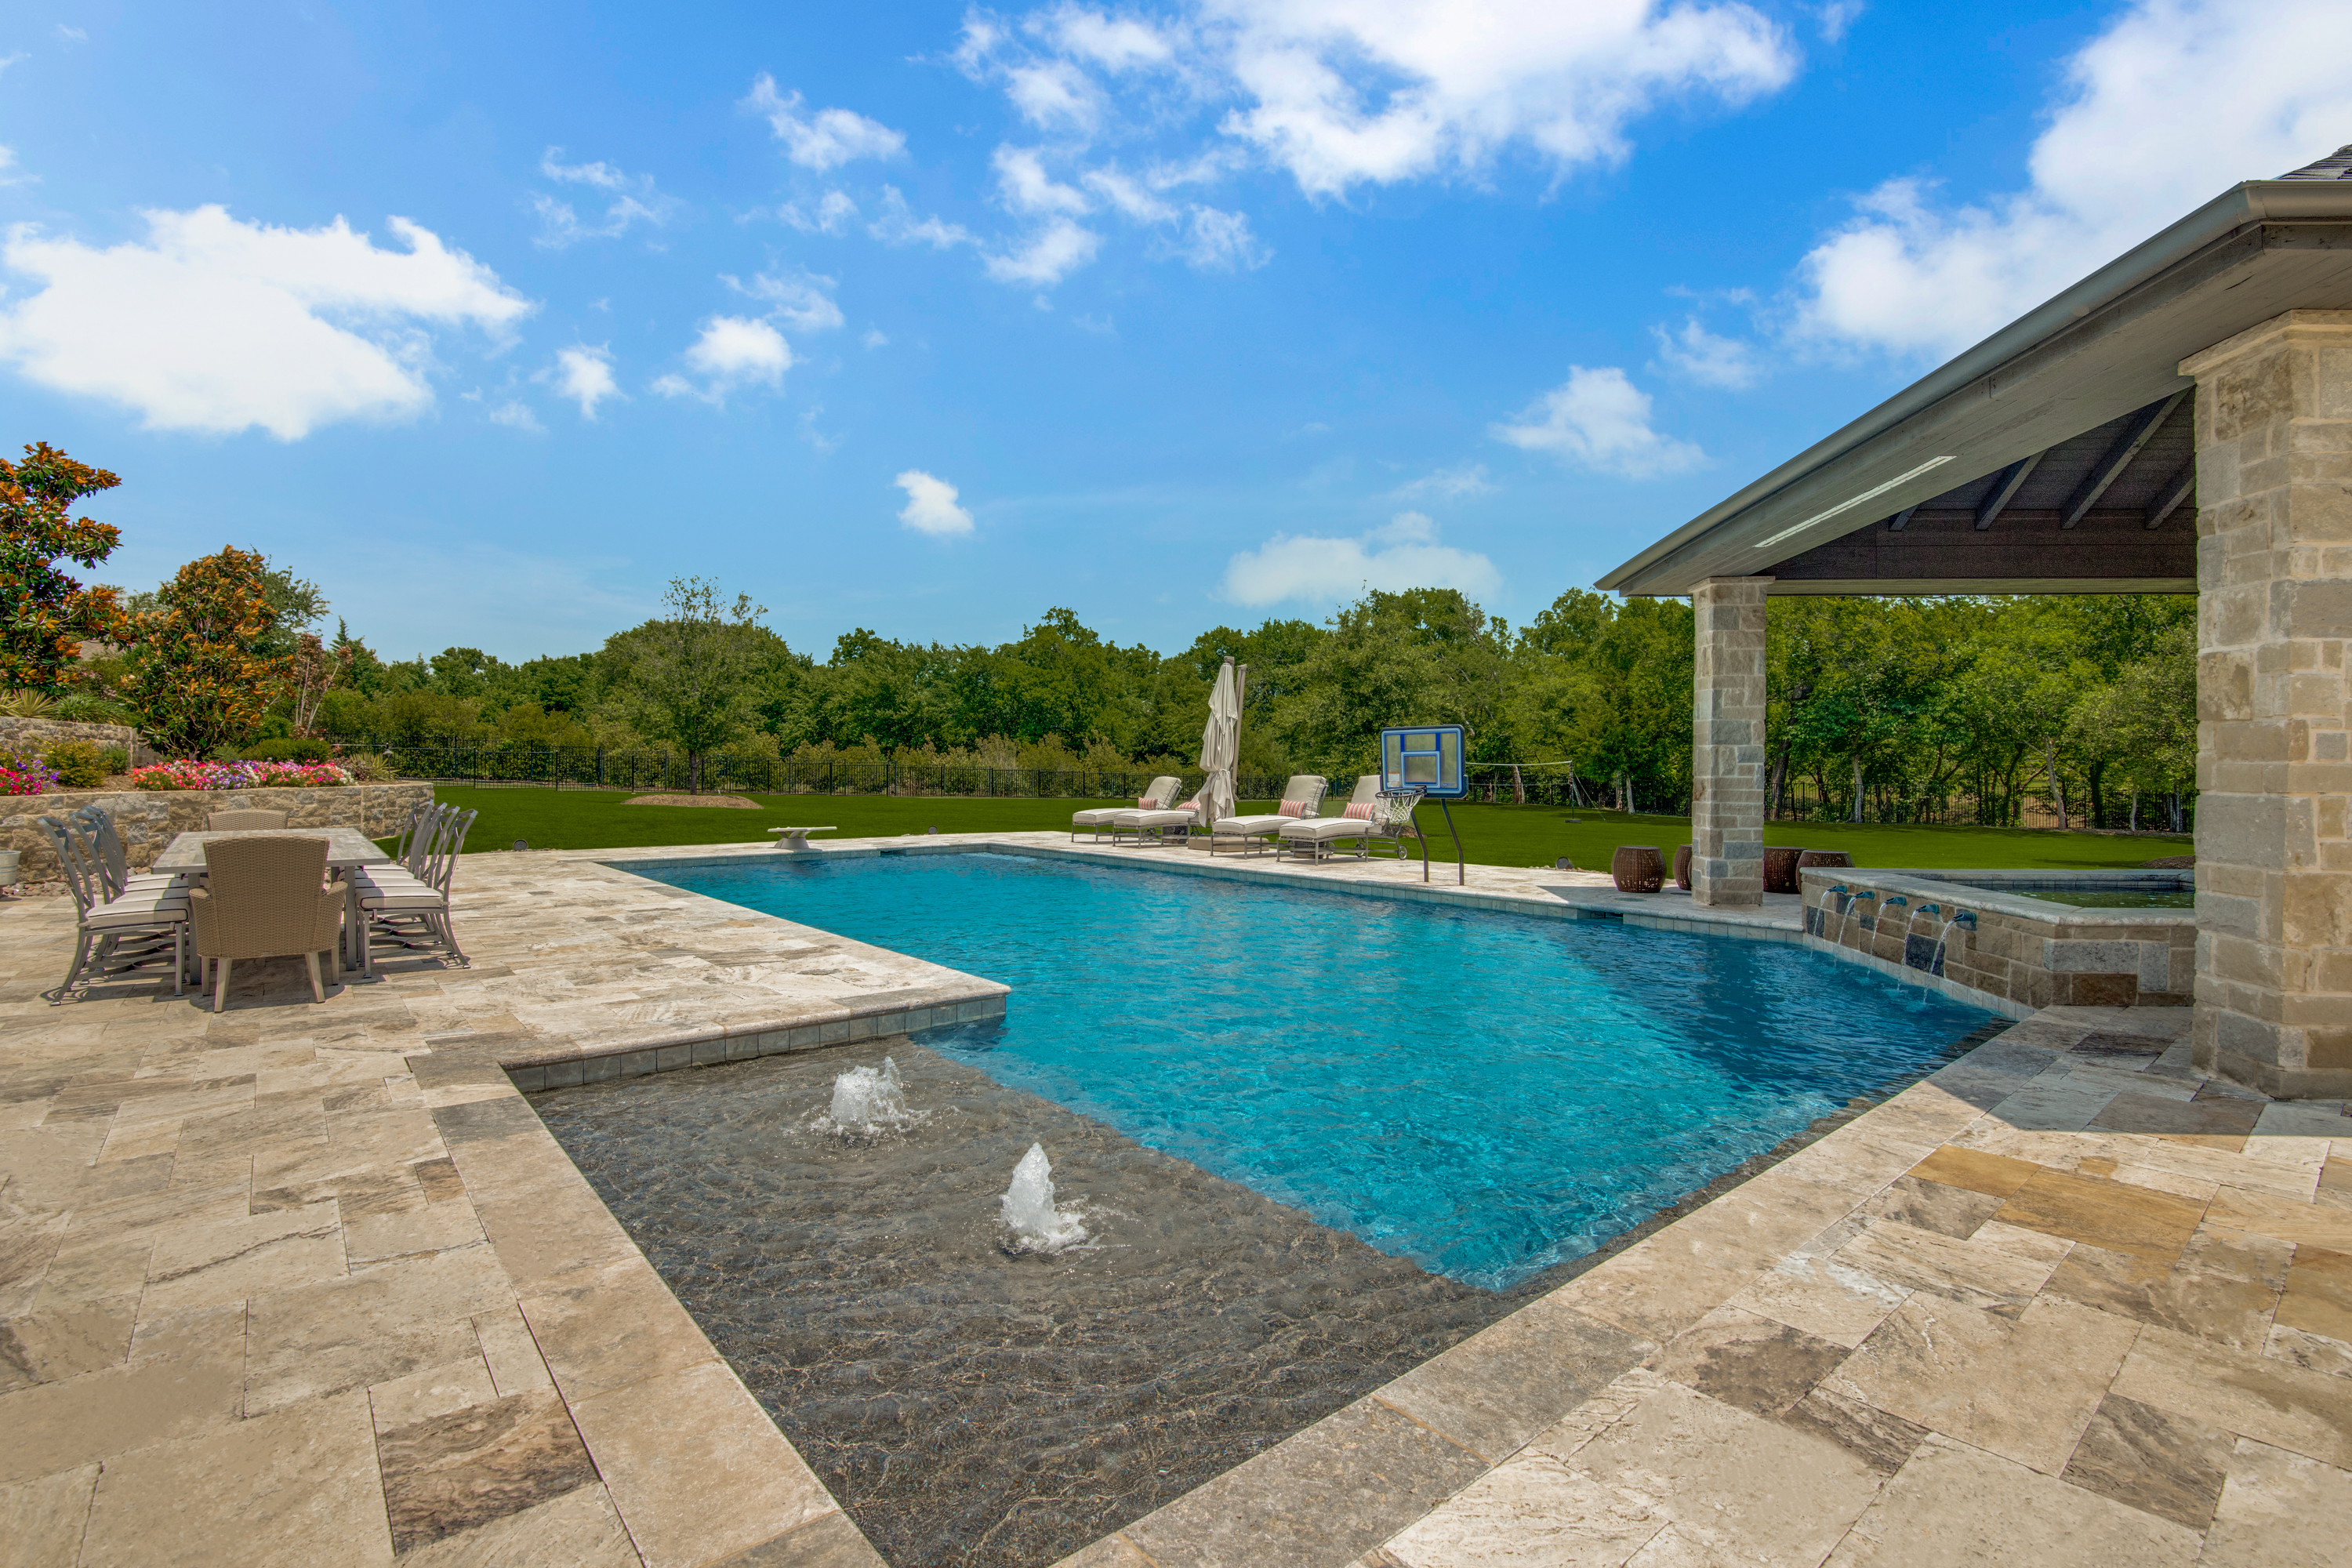 Gold_Medal_Pools-Residential_Pool_Straight_Line_Style-Prosper-TX-2